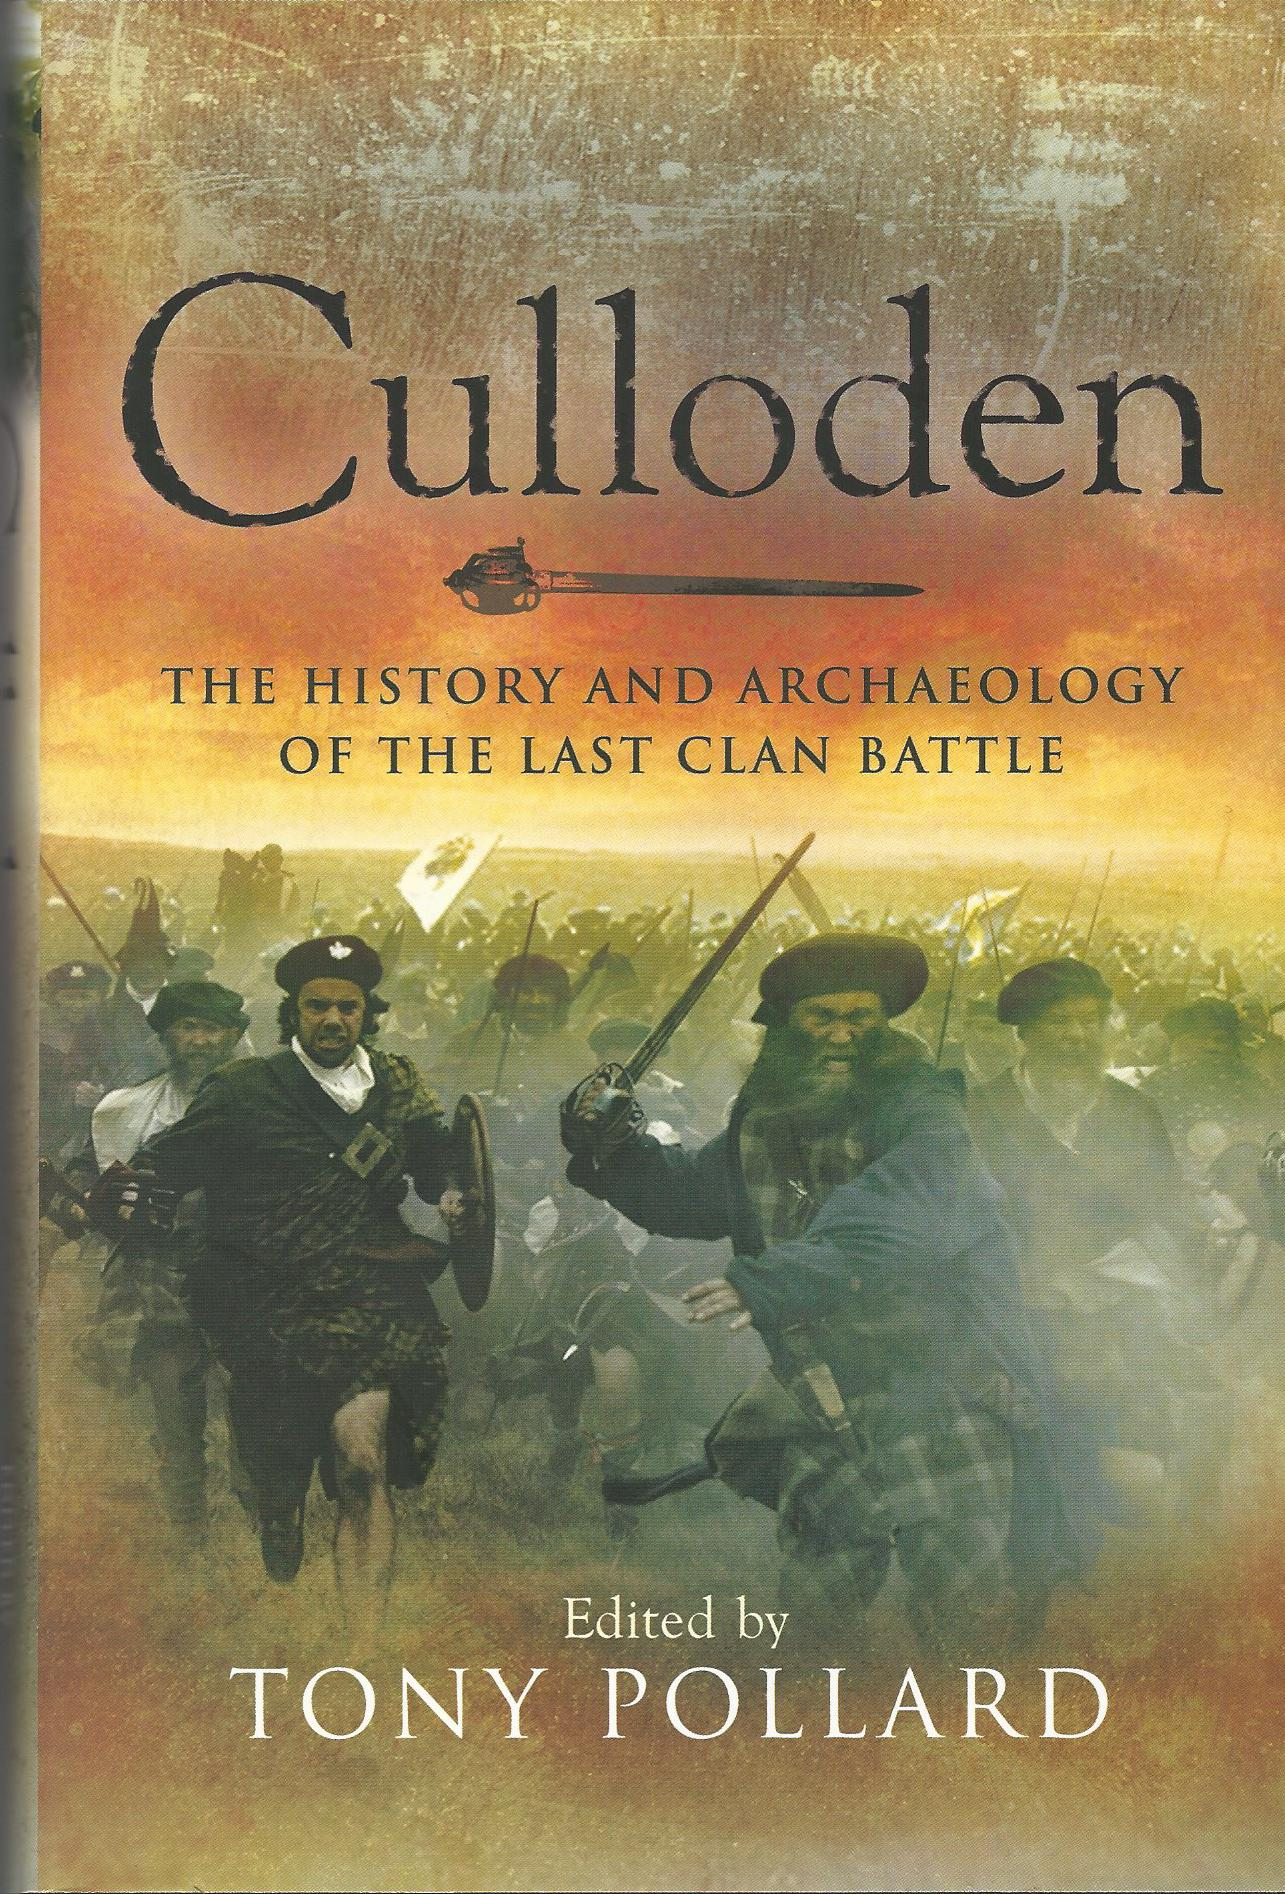 Image for Culloden: The History and Archaeology of the Last Clan Battle